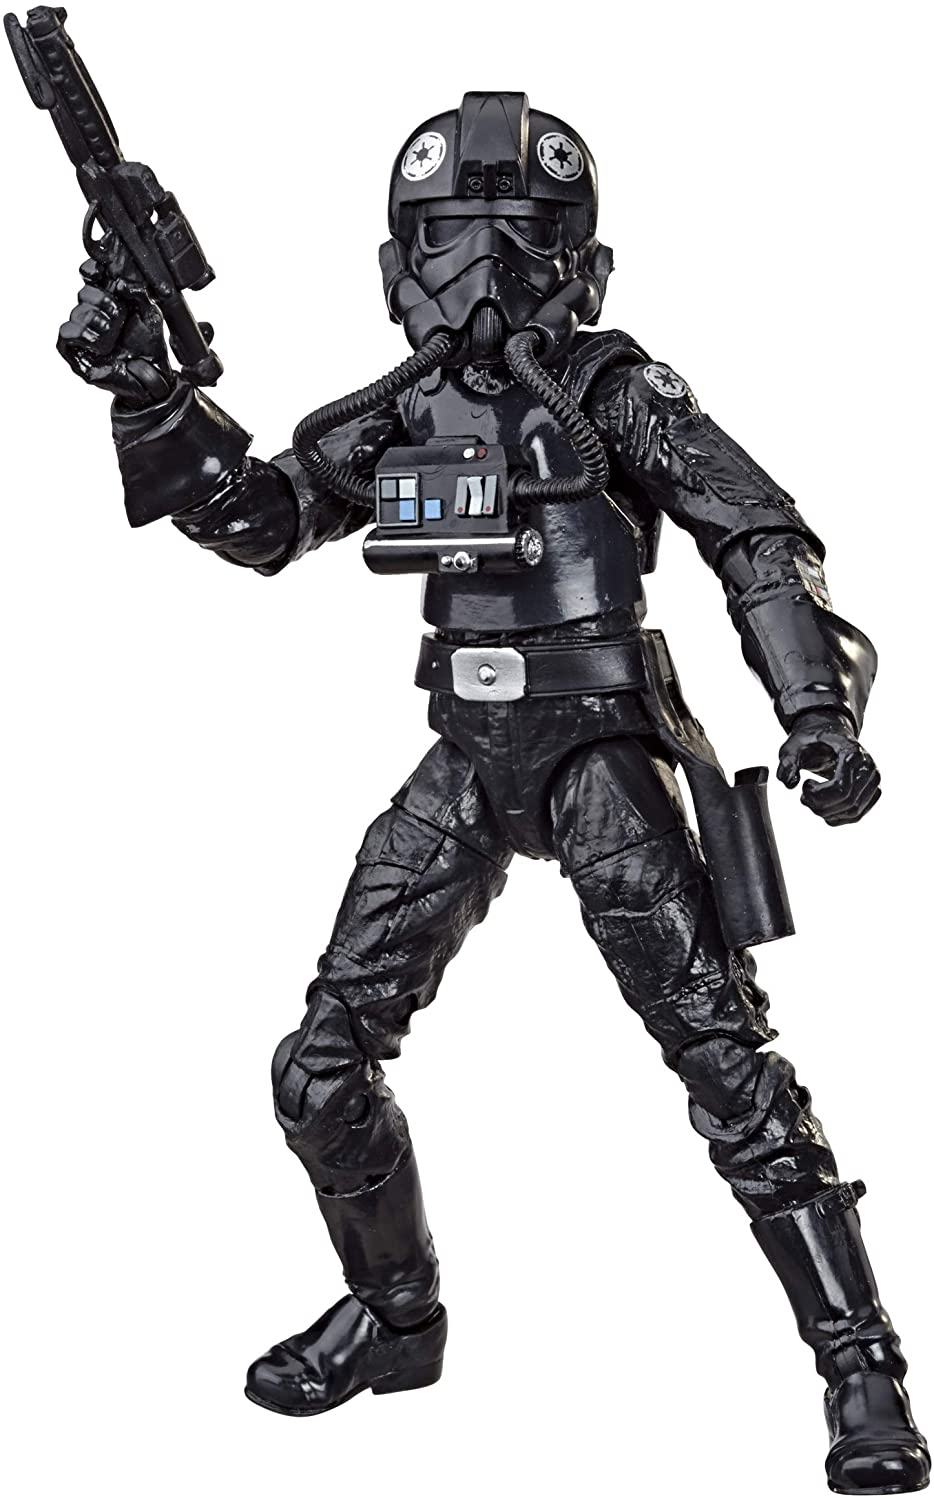 Star Wars: Black Series (Classic Box) IMPERIAL TIE FIGHTER PILOT Empire Strike Back40th Anniversary by Hasbro